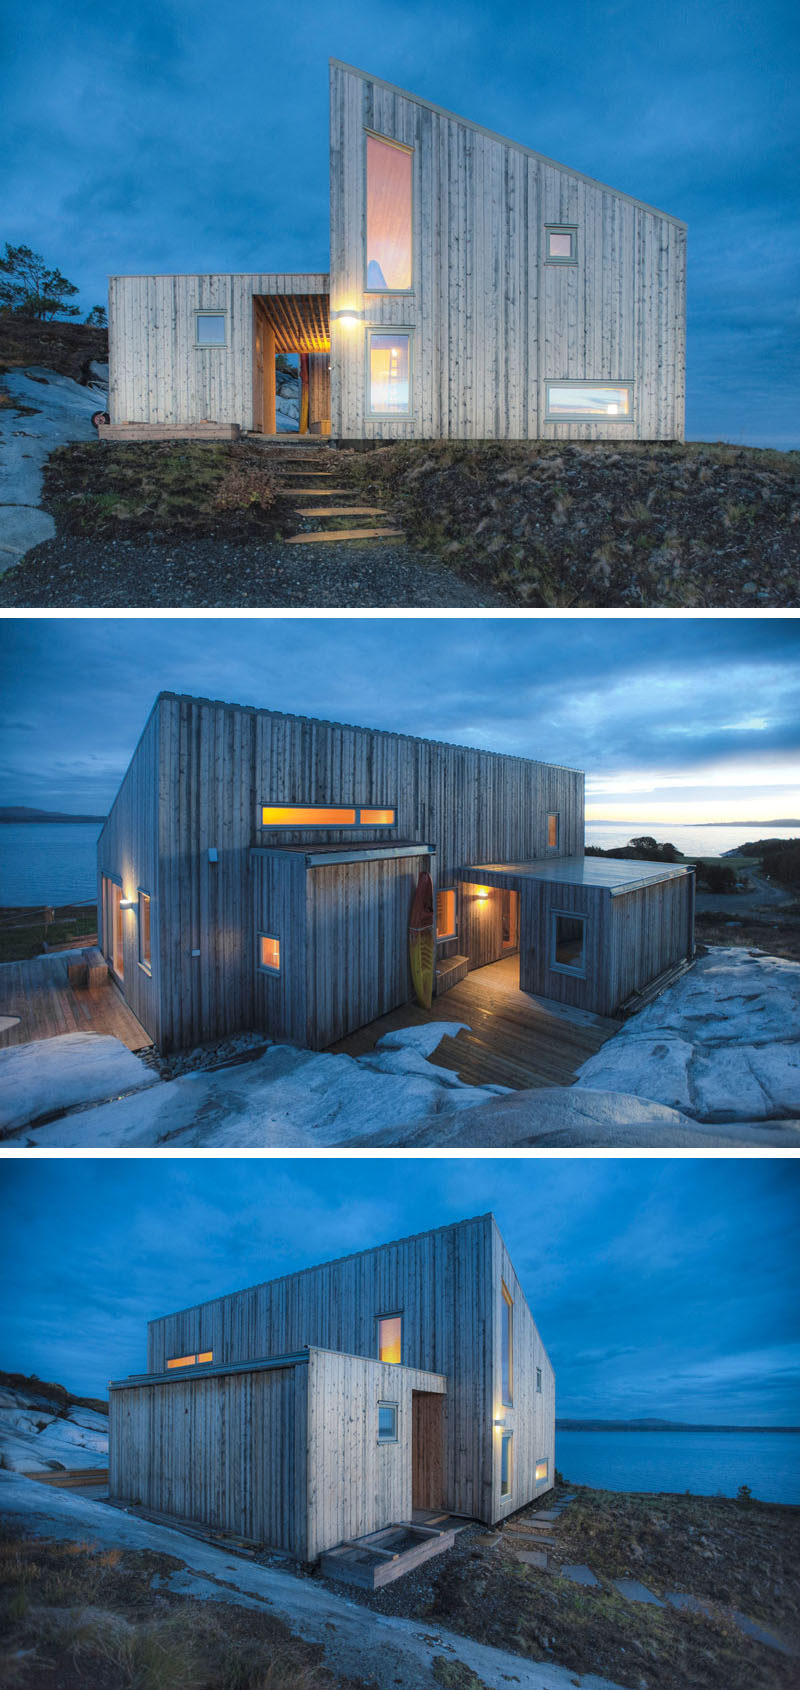 This small wood cabin sits on the rocky coast of Norway